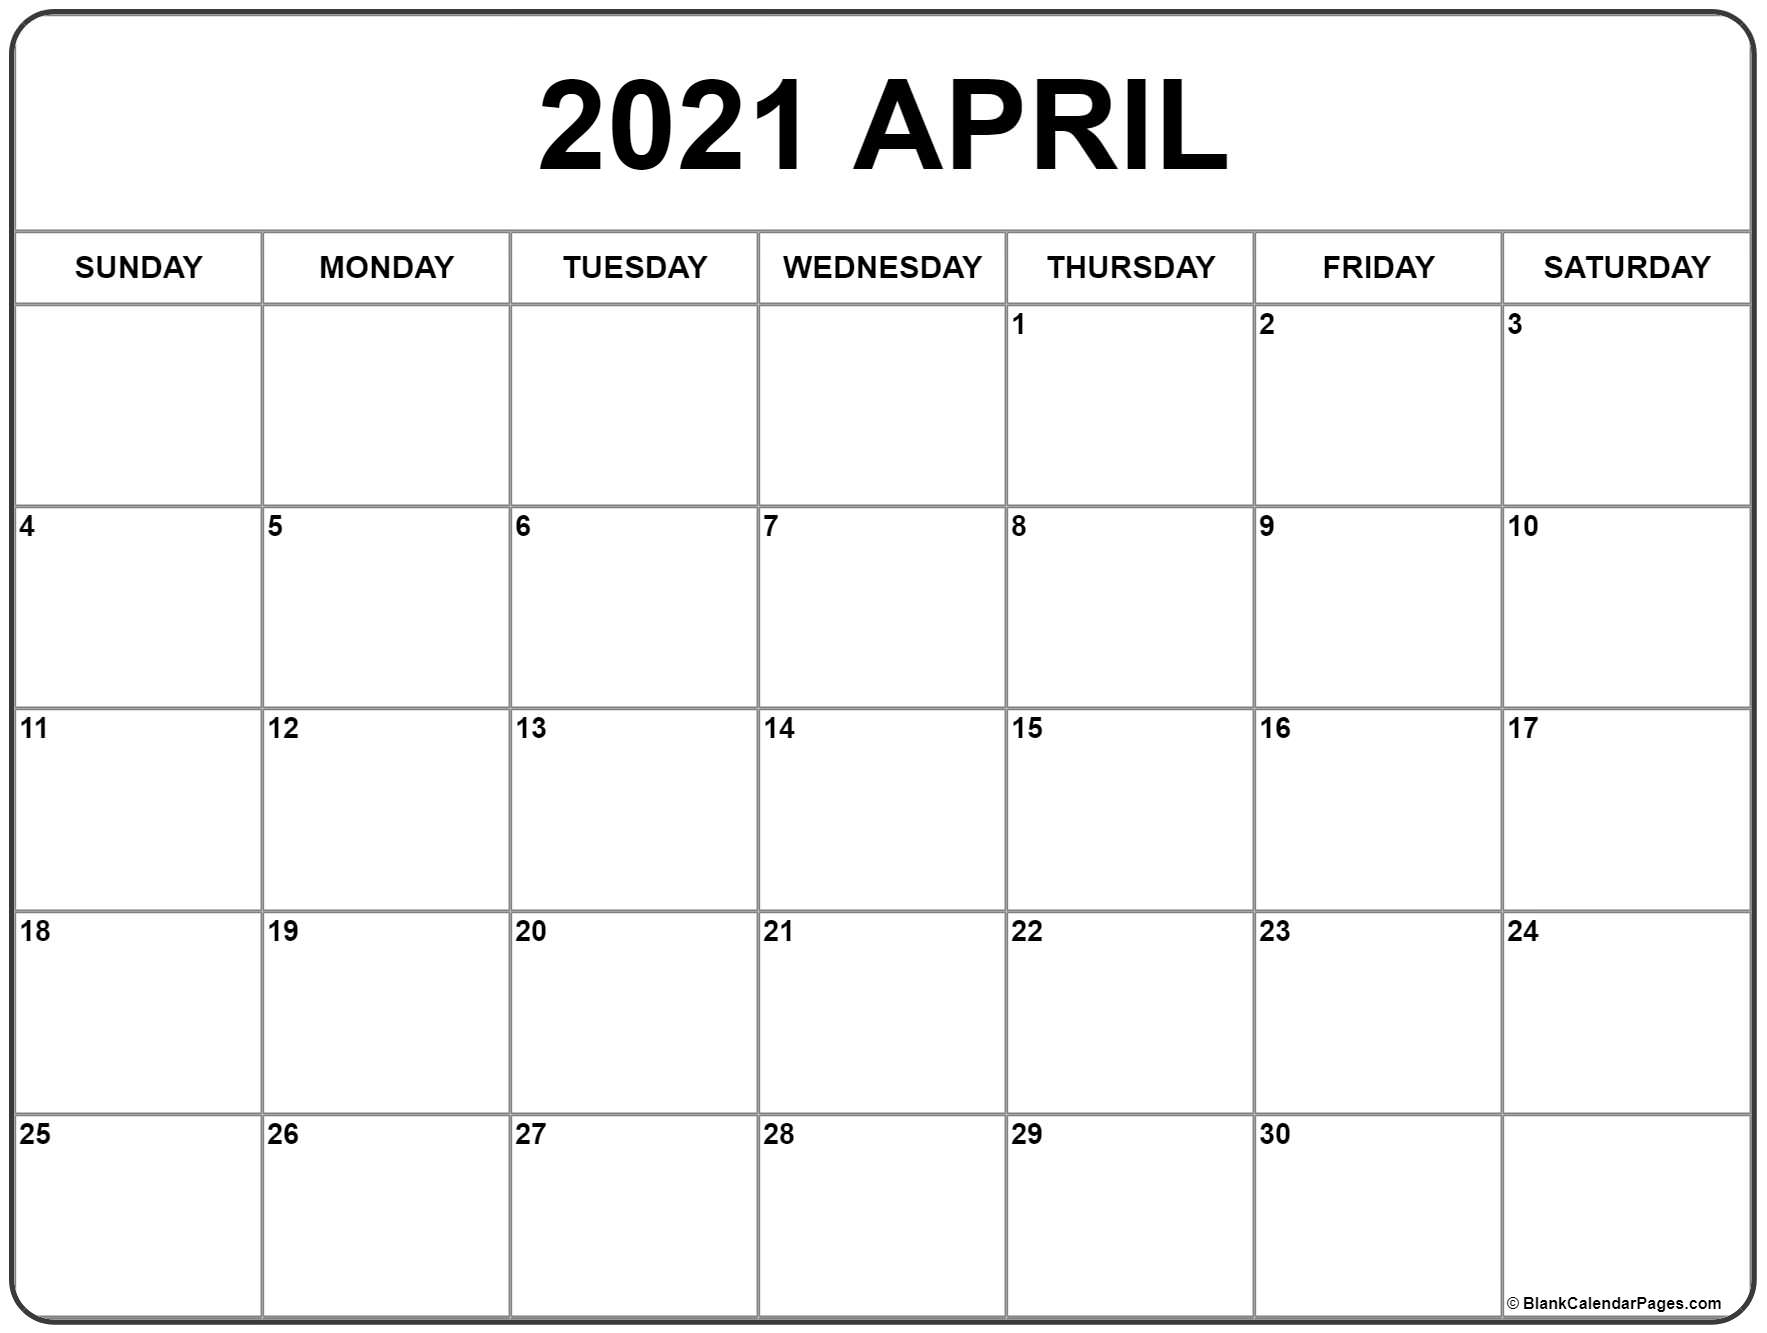 April 2021 Calendar | Free Printable Monthly Calendars for Fill In 2021 Calendar Pages Blank